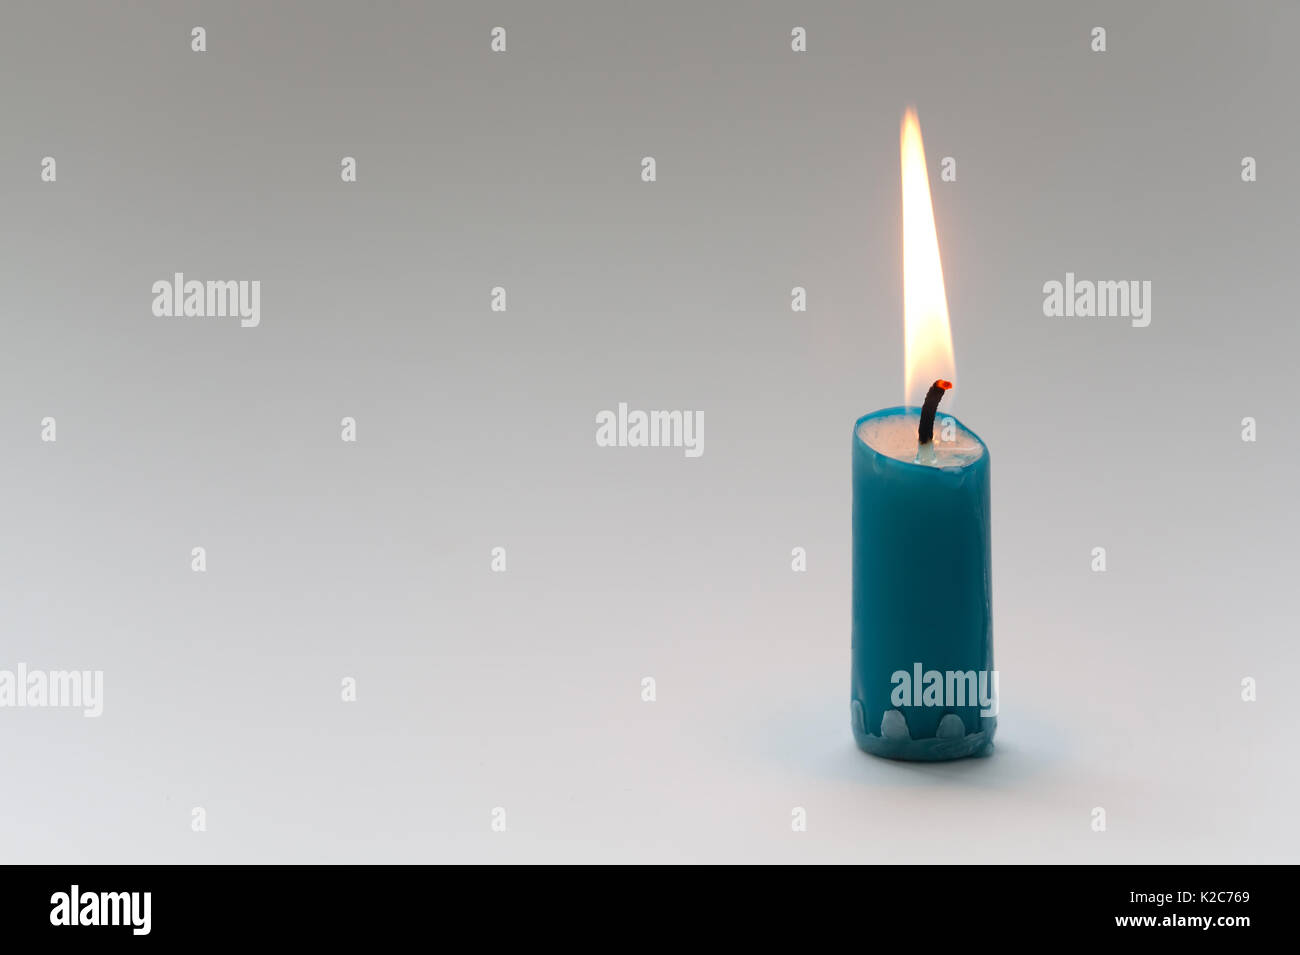 Burning candle with natural flame. Turquoise color. Simplicity concept Life symbol. Close-up, Shallow depth of field. gradient gray background. copy space - Stock Image